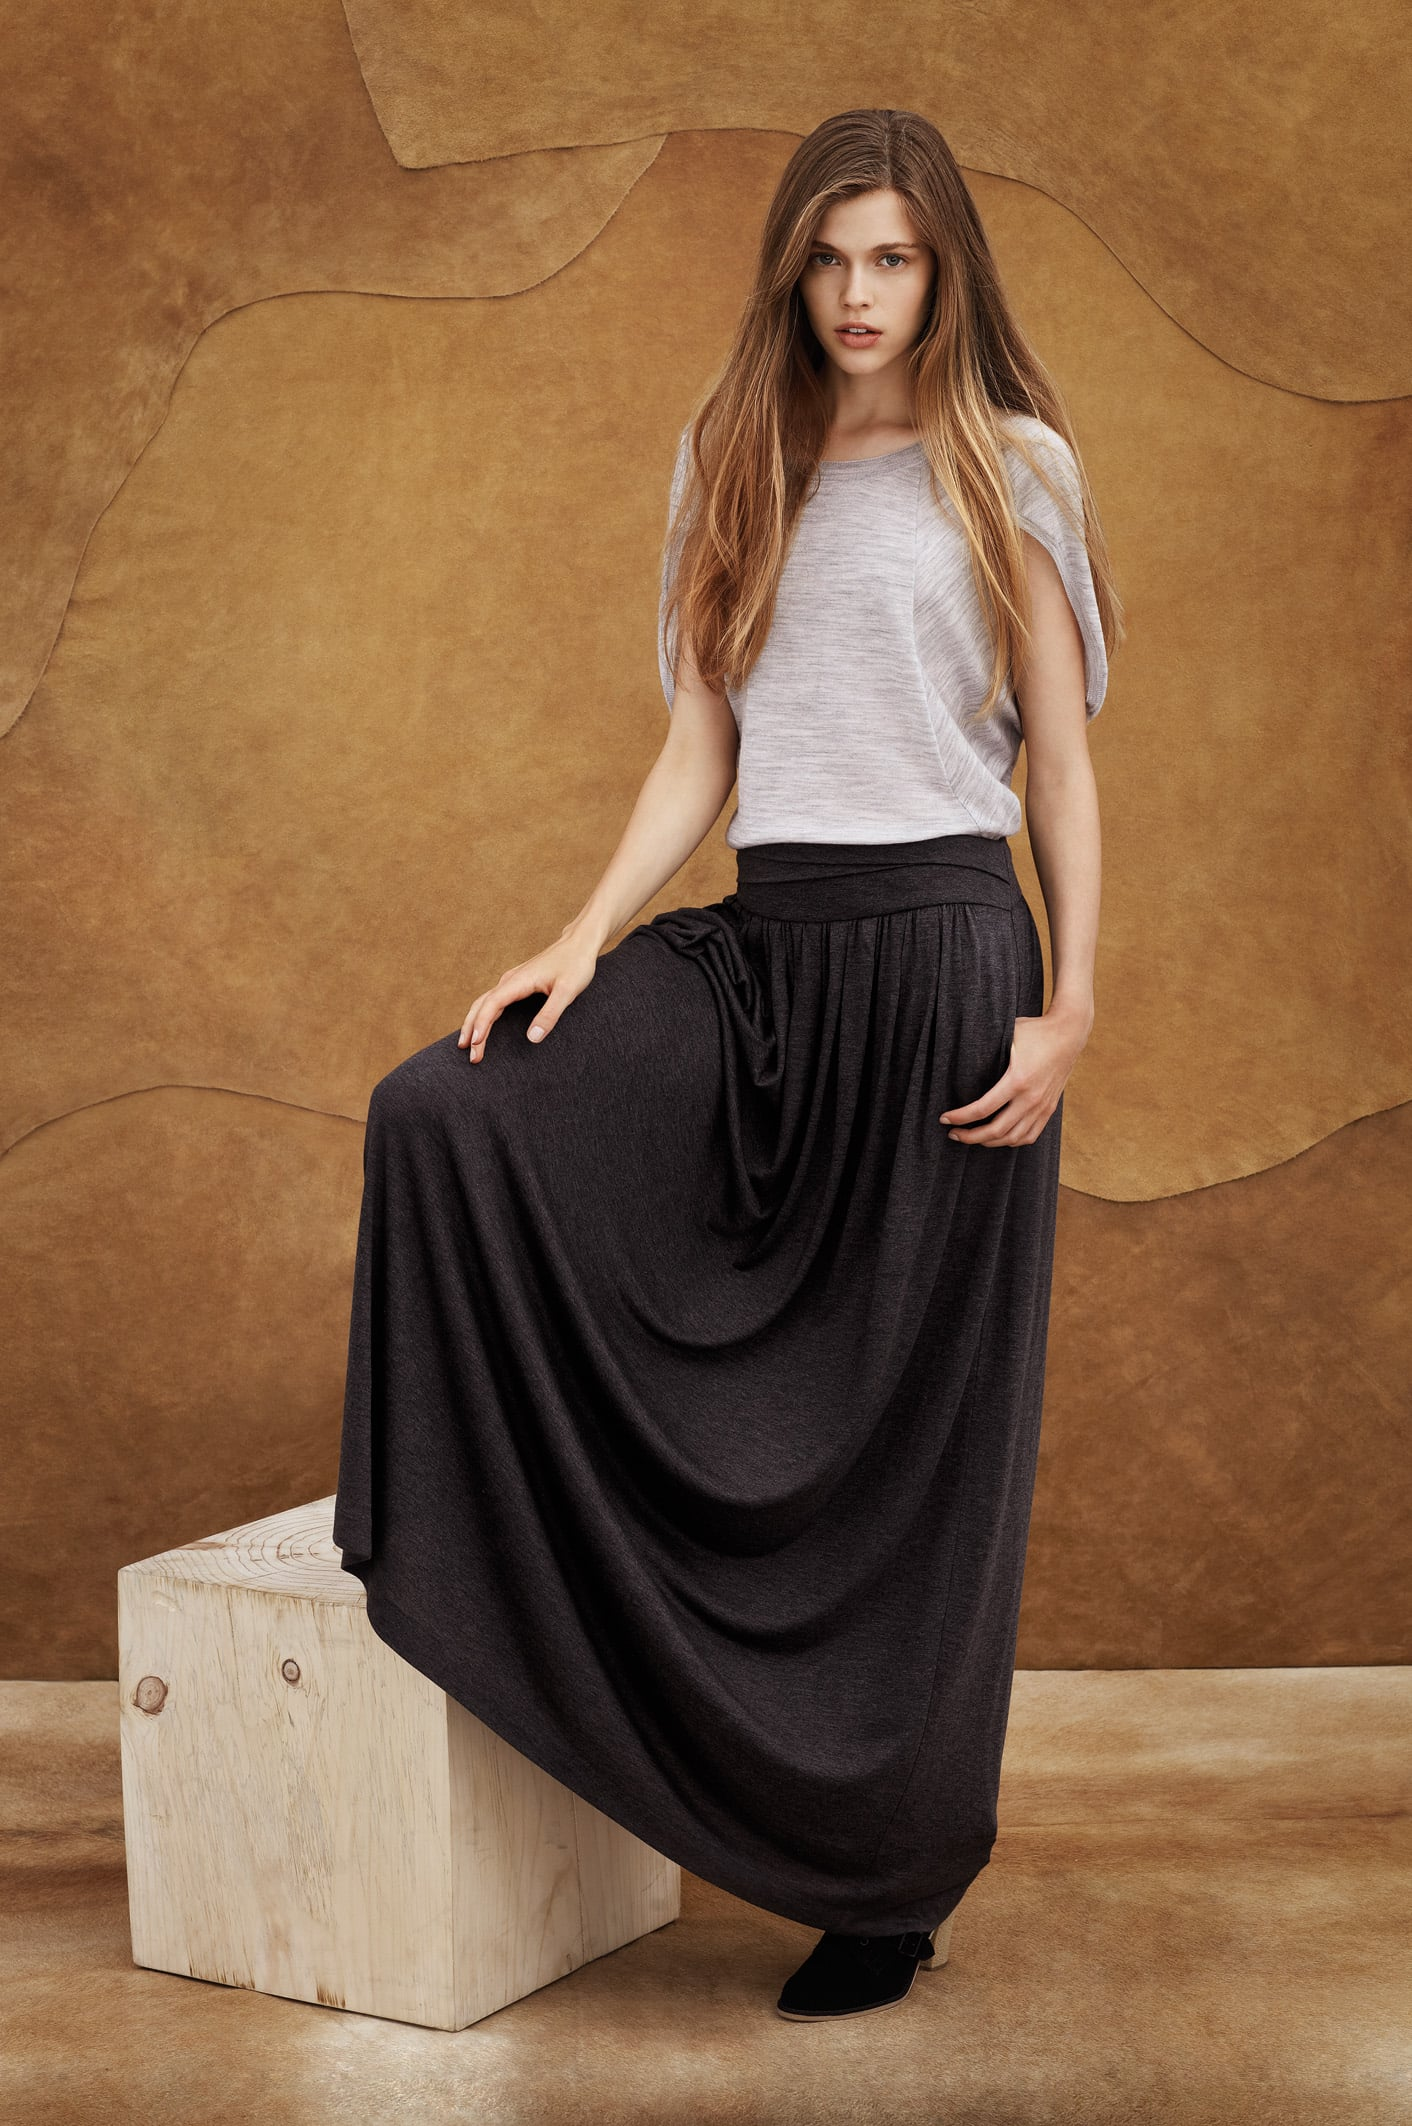 Victoria Lee shows us how to wear the maxi: simply done.